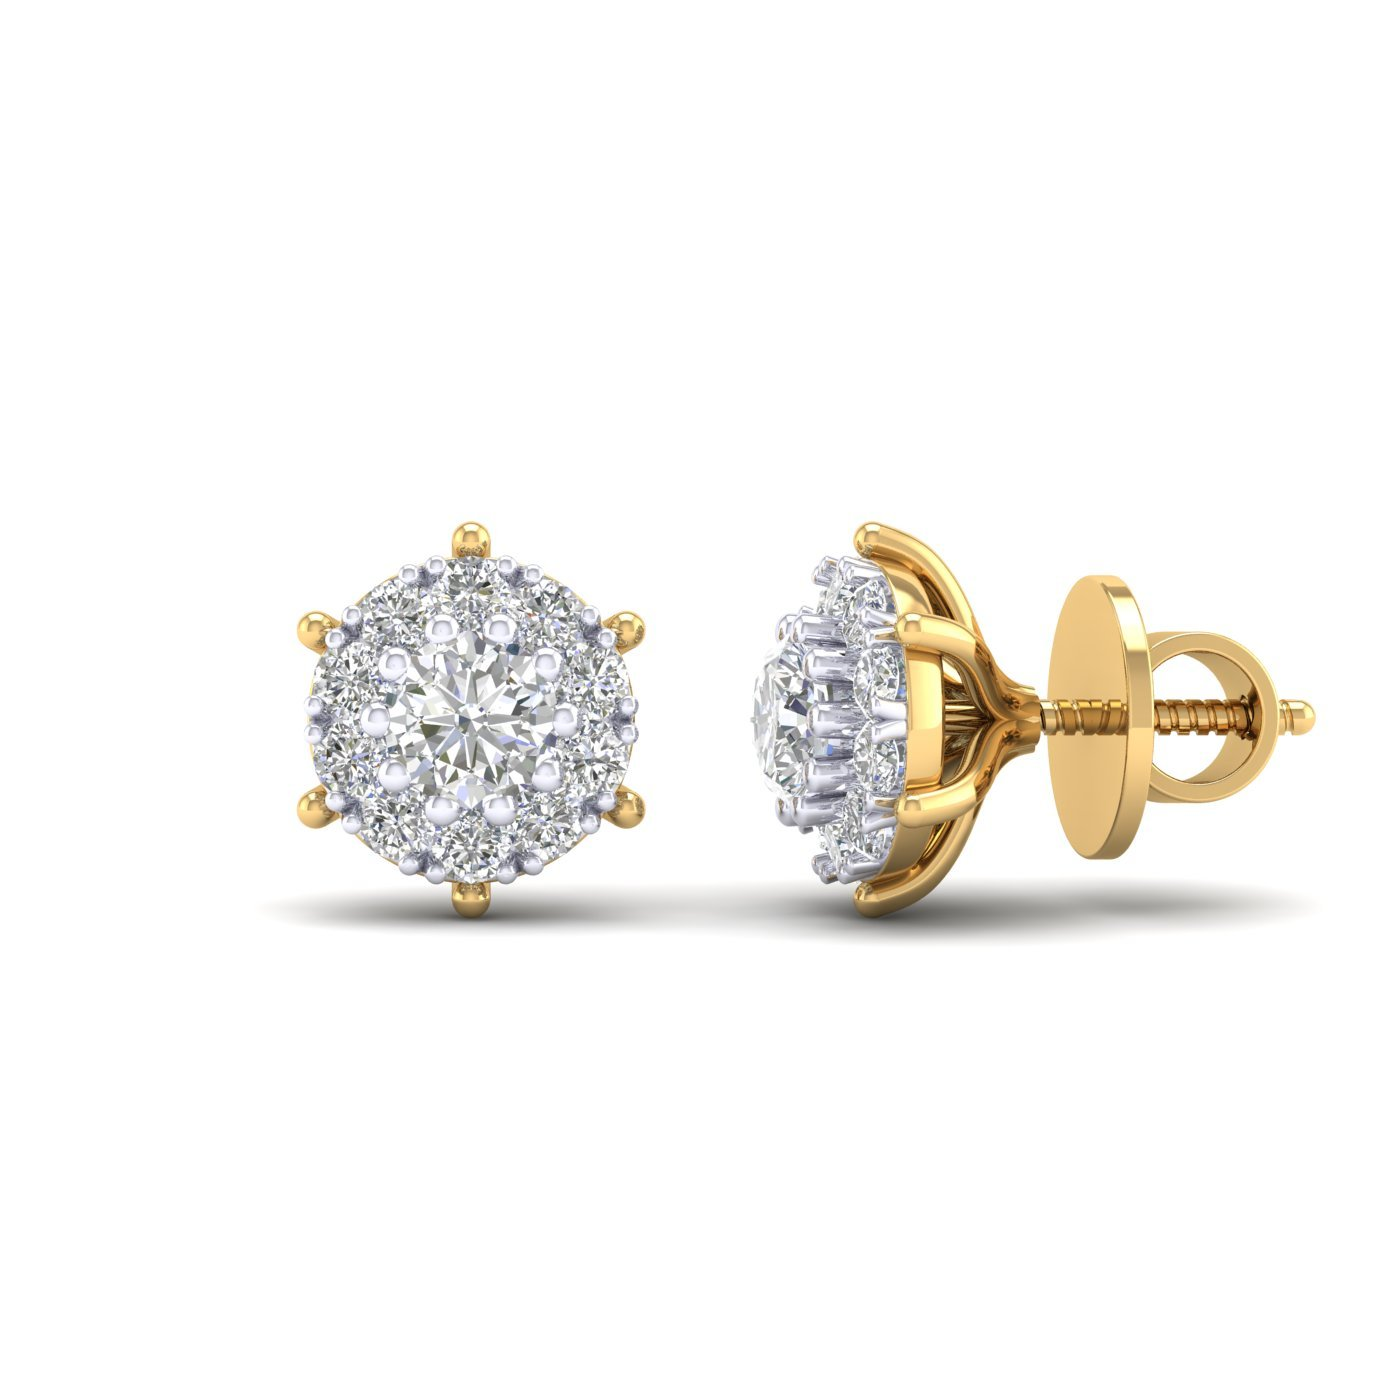 14K Yellow Gold Plated Round Cut AAA Cubic Zirconia Halo Style Cluster Mini Stud Earrings Summer Sale